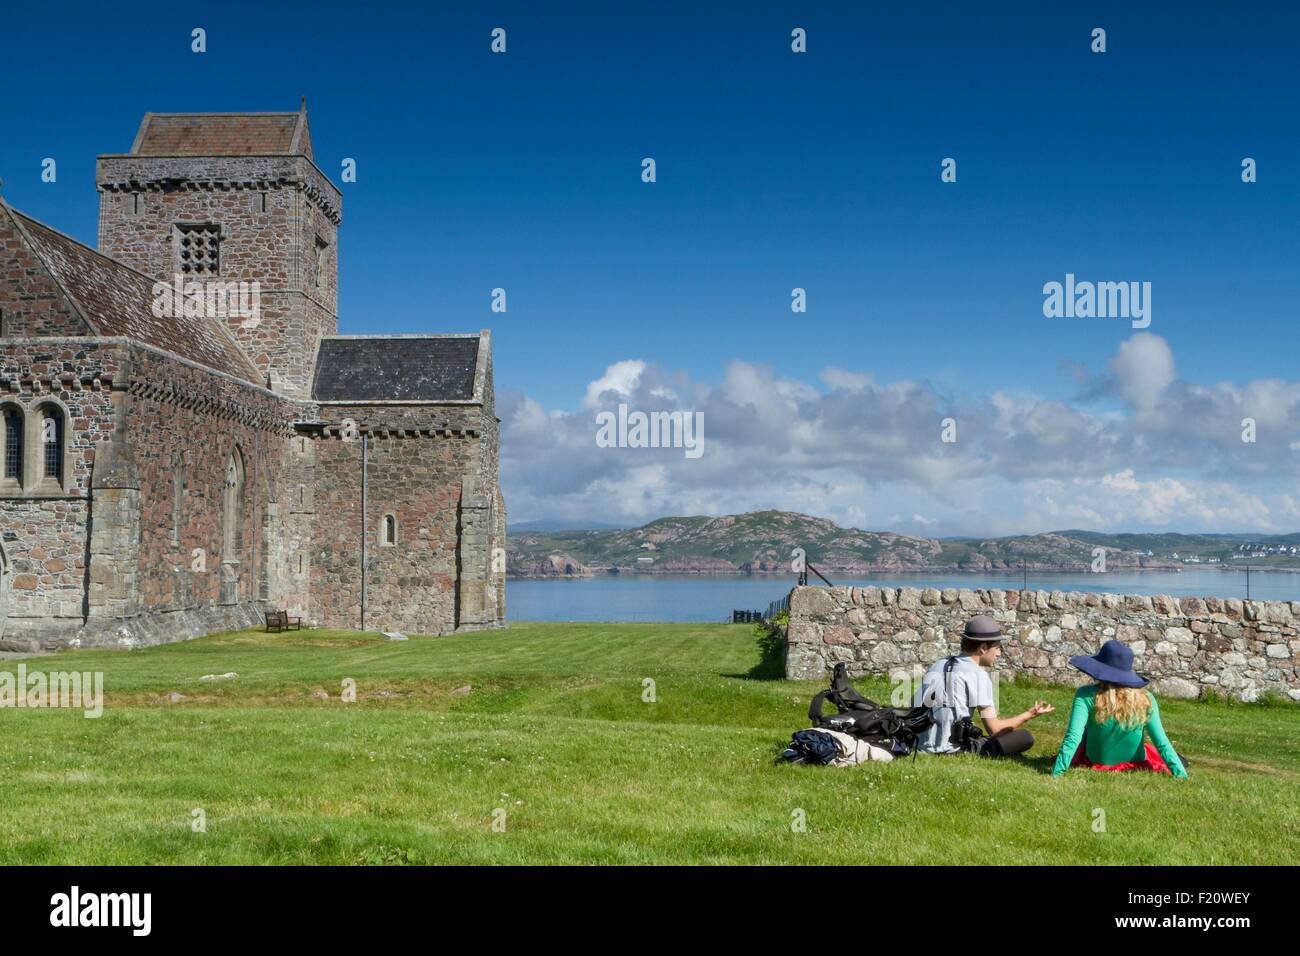 United Kingdom, Scotland, Hebrides, Isle of Iona, Iona Abbey, couple relaxing in the grass next to the Iona Abbey - Stock Image